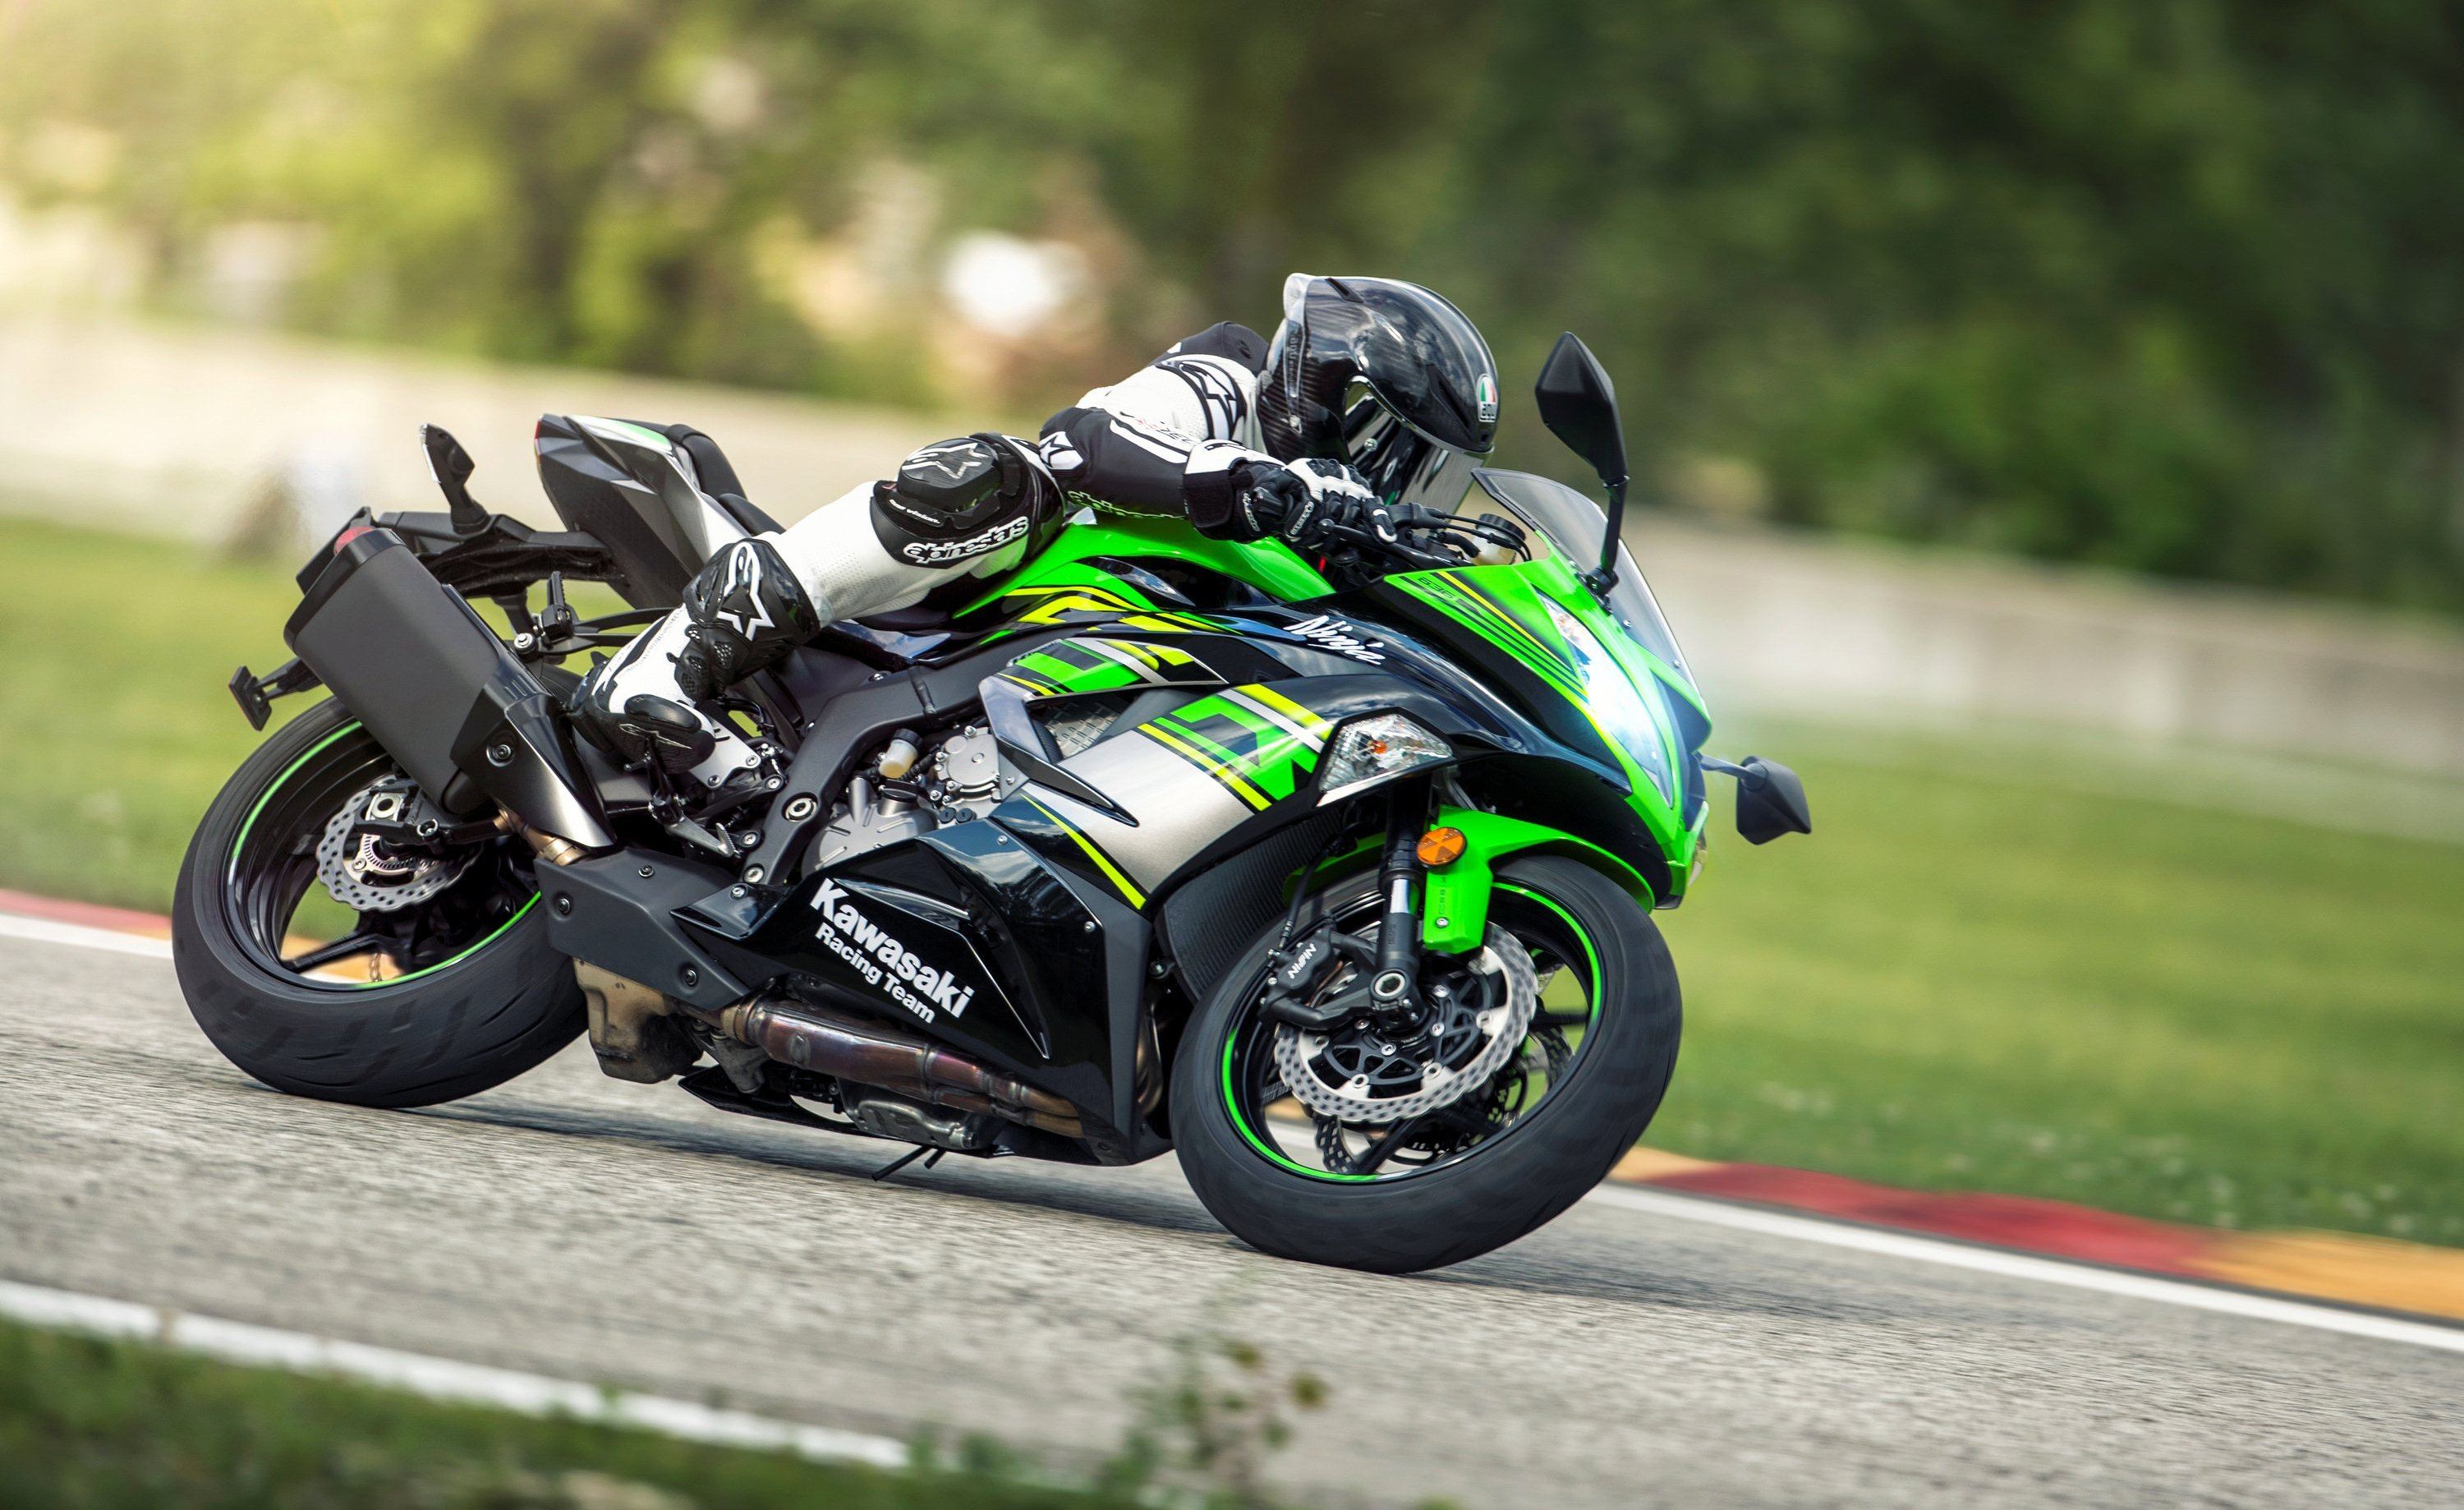 New 2019 Kawasaki Ninja Zx 6r Coming Oct 11